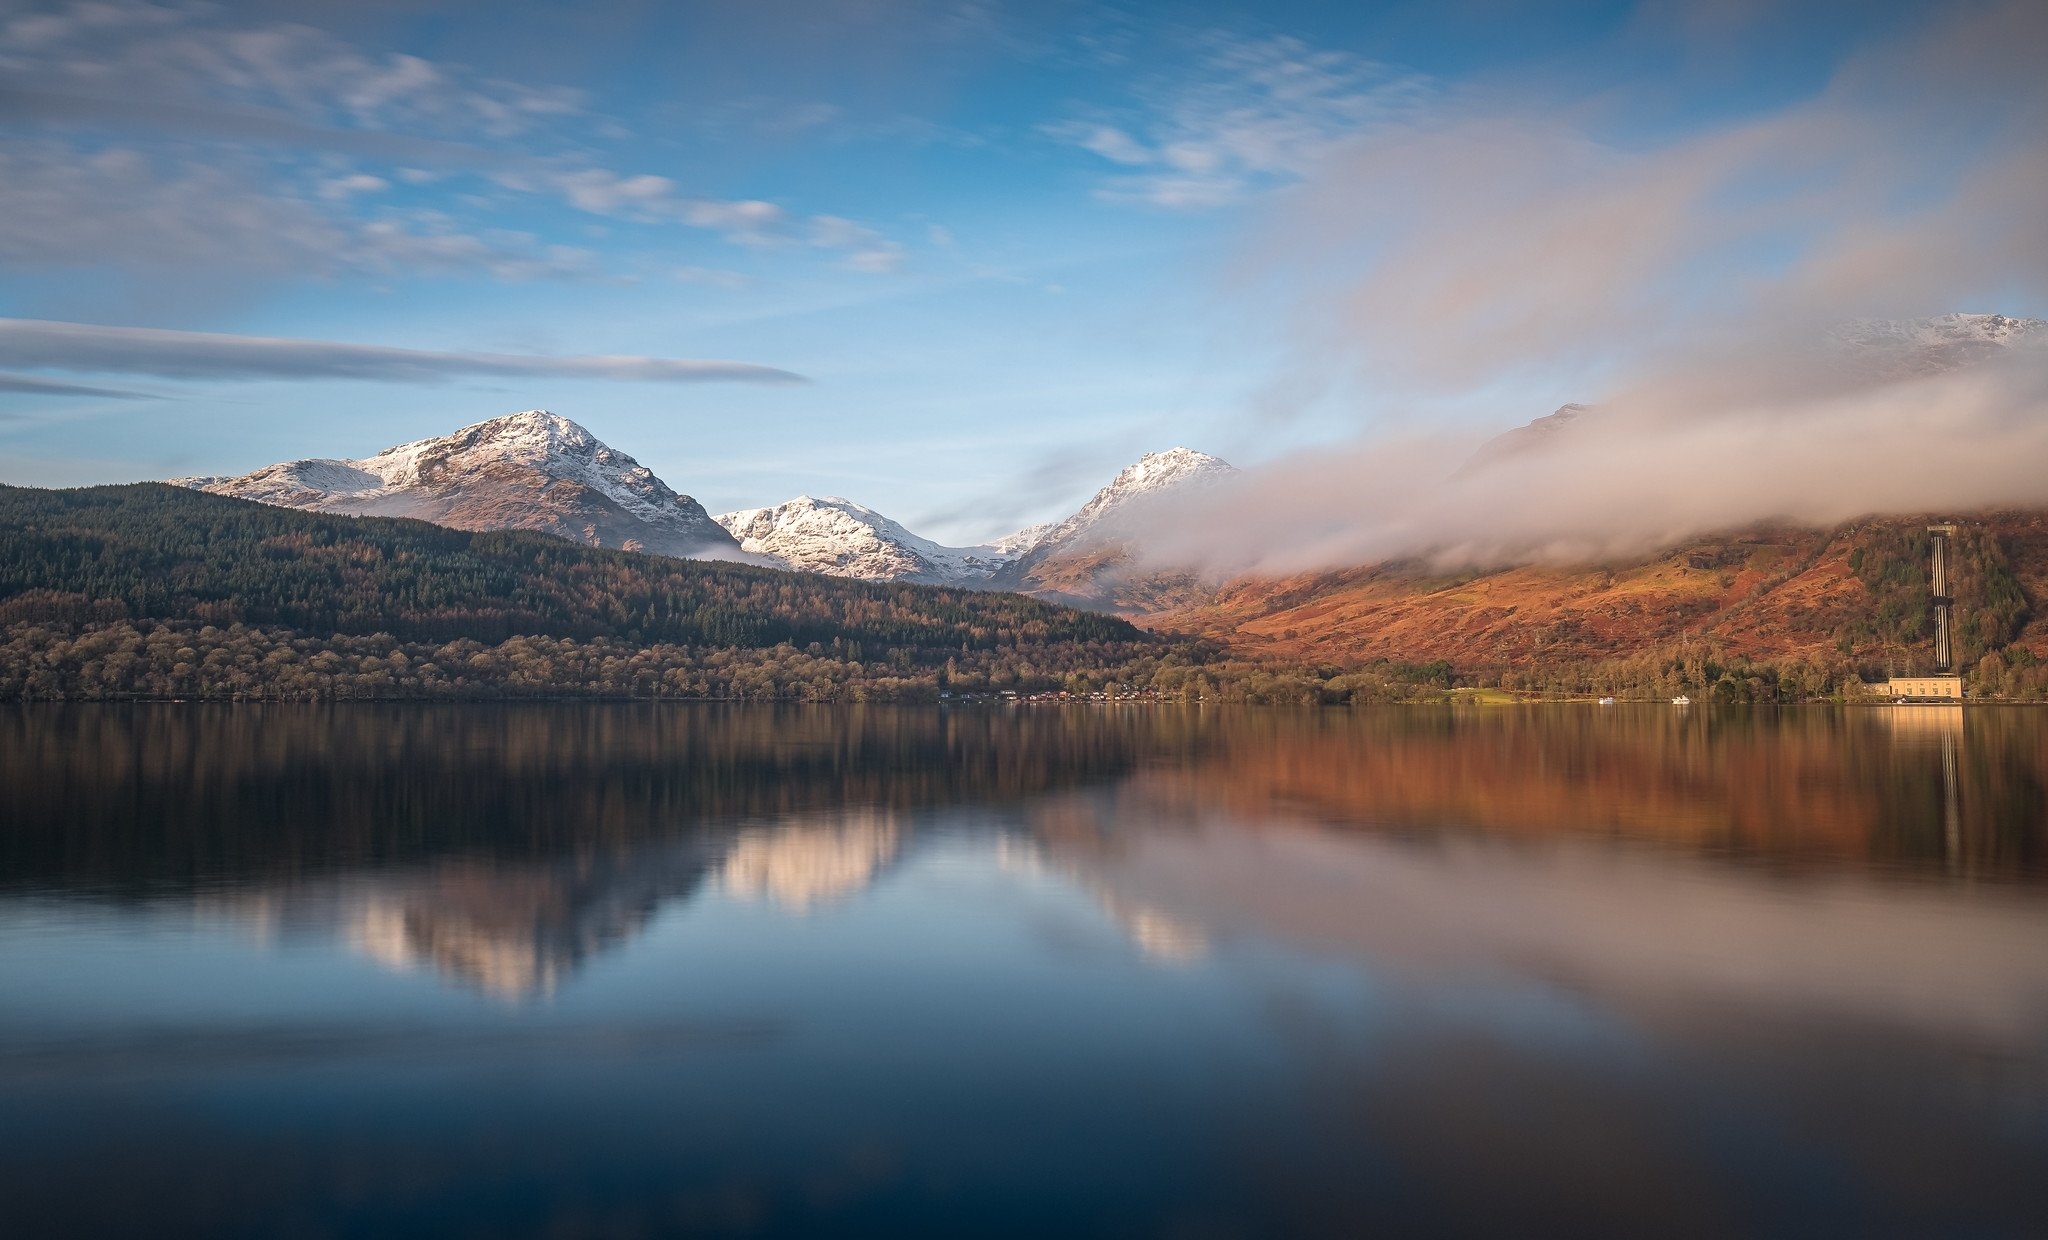 Loch Lomond and the Trossachs, Scotland